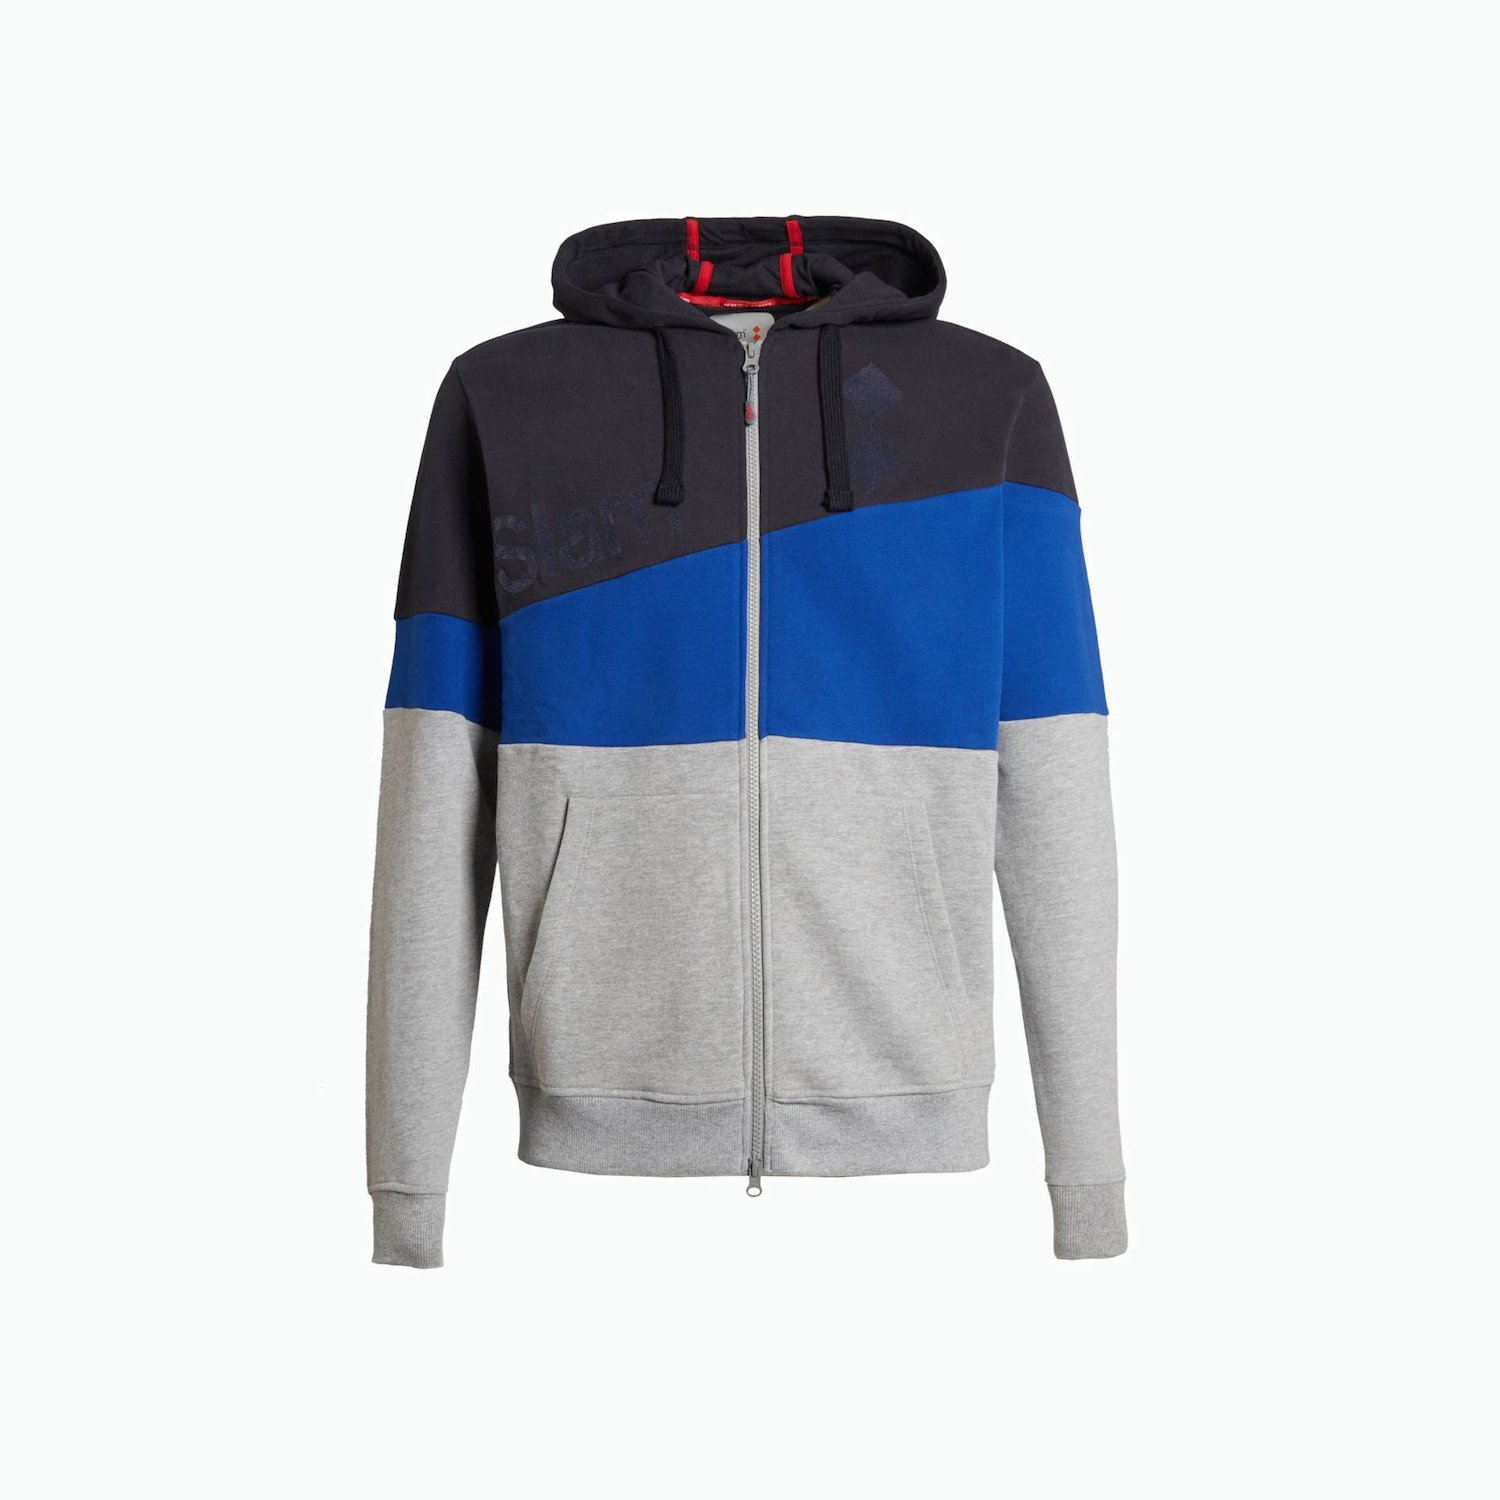 B53 sweatshirt - Navy / Marine Blue / Grey Melange